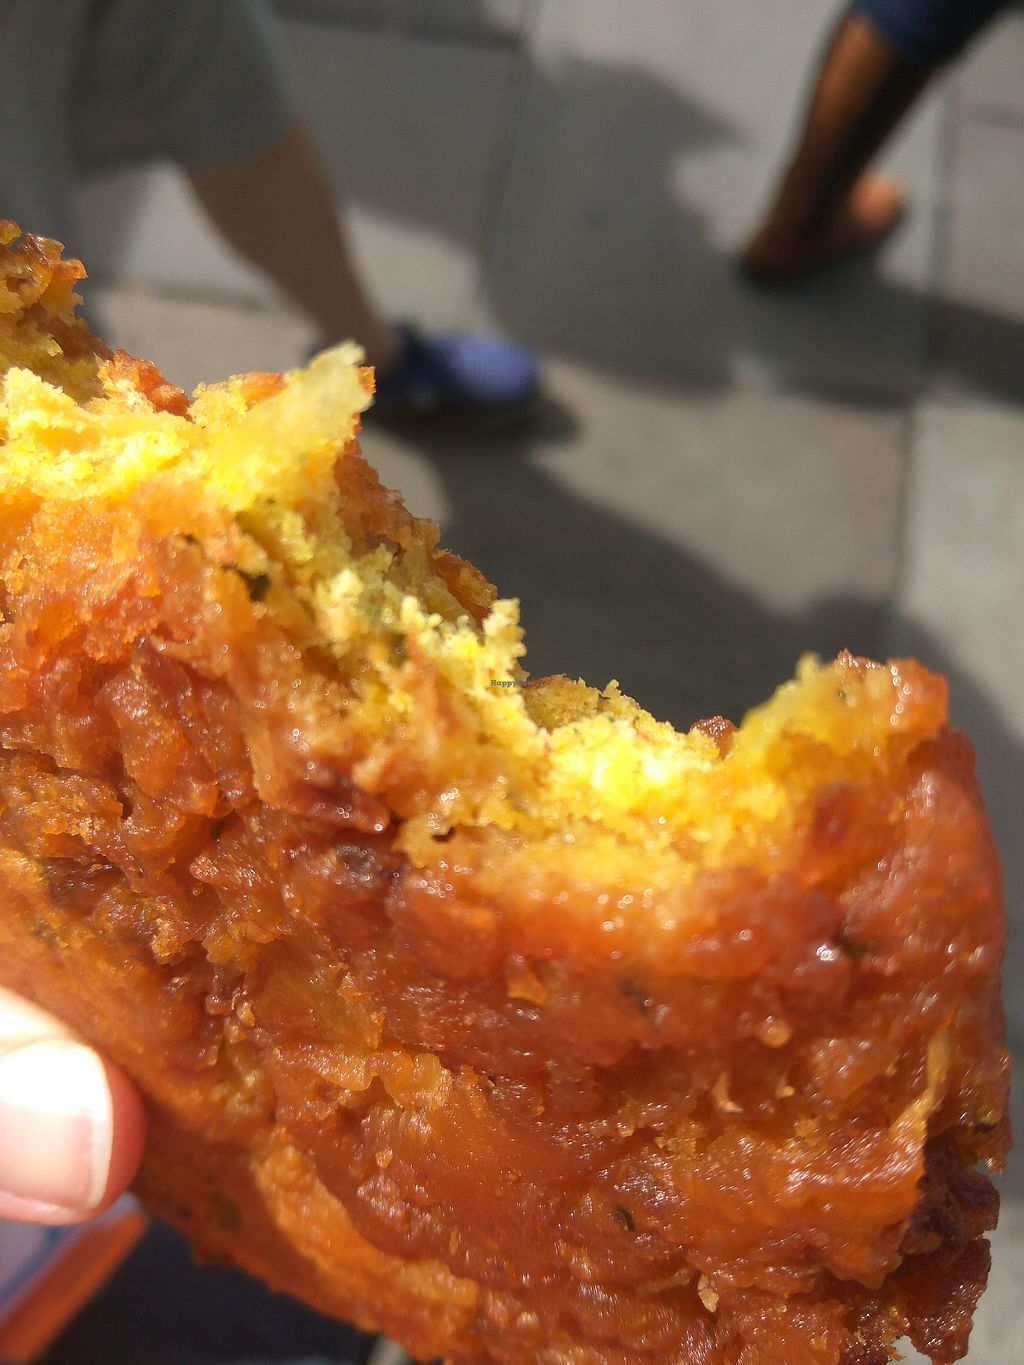 """Photo of Real Foods  by <a href=""""/members/profile/TrixieFirecracker"""">TrixieFirecracker</a> <br/>Onion bhaji - more food for on the go, between Fringe shows <br/> August 7, 2017  - <a href='/contact/abuse/image/1088/290175'>Report</a>"""